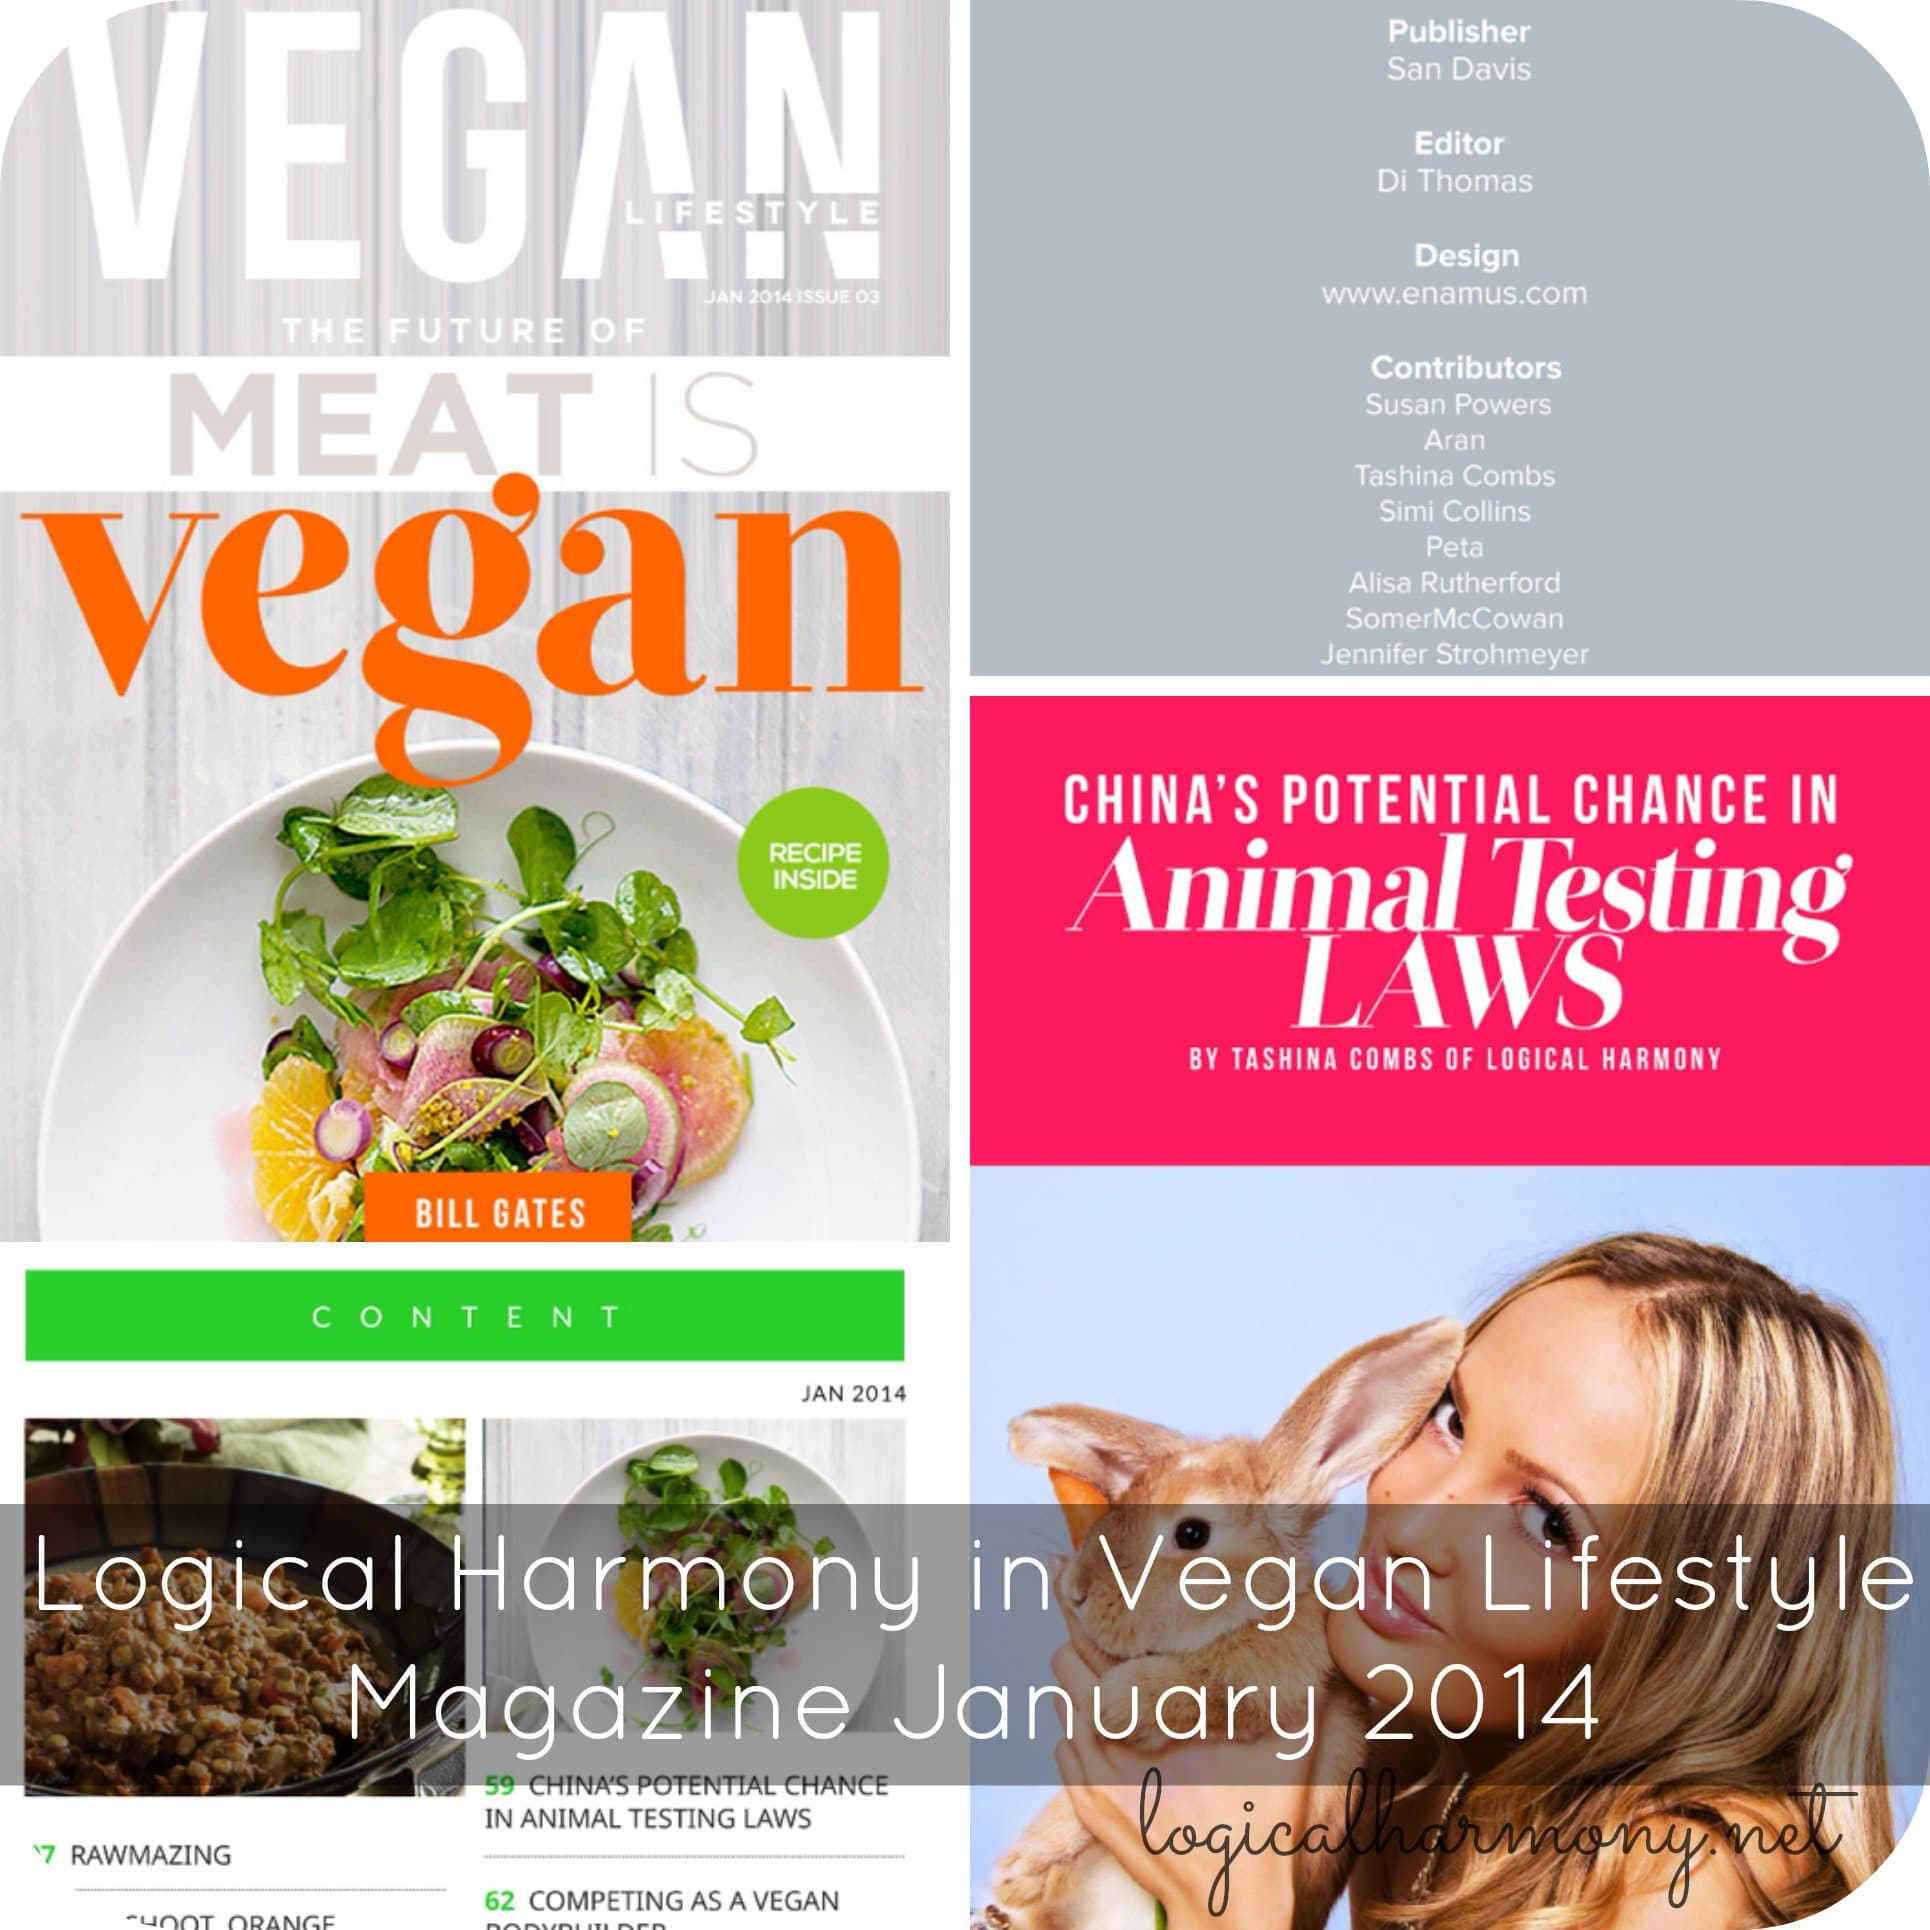 Logical Harmony in Vegan Lifestyle Magazine - January 2014